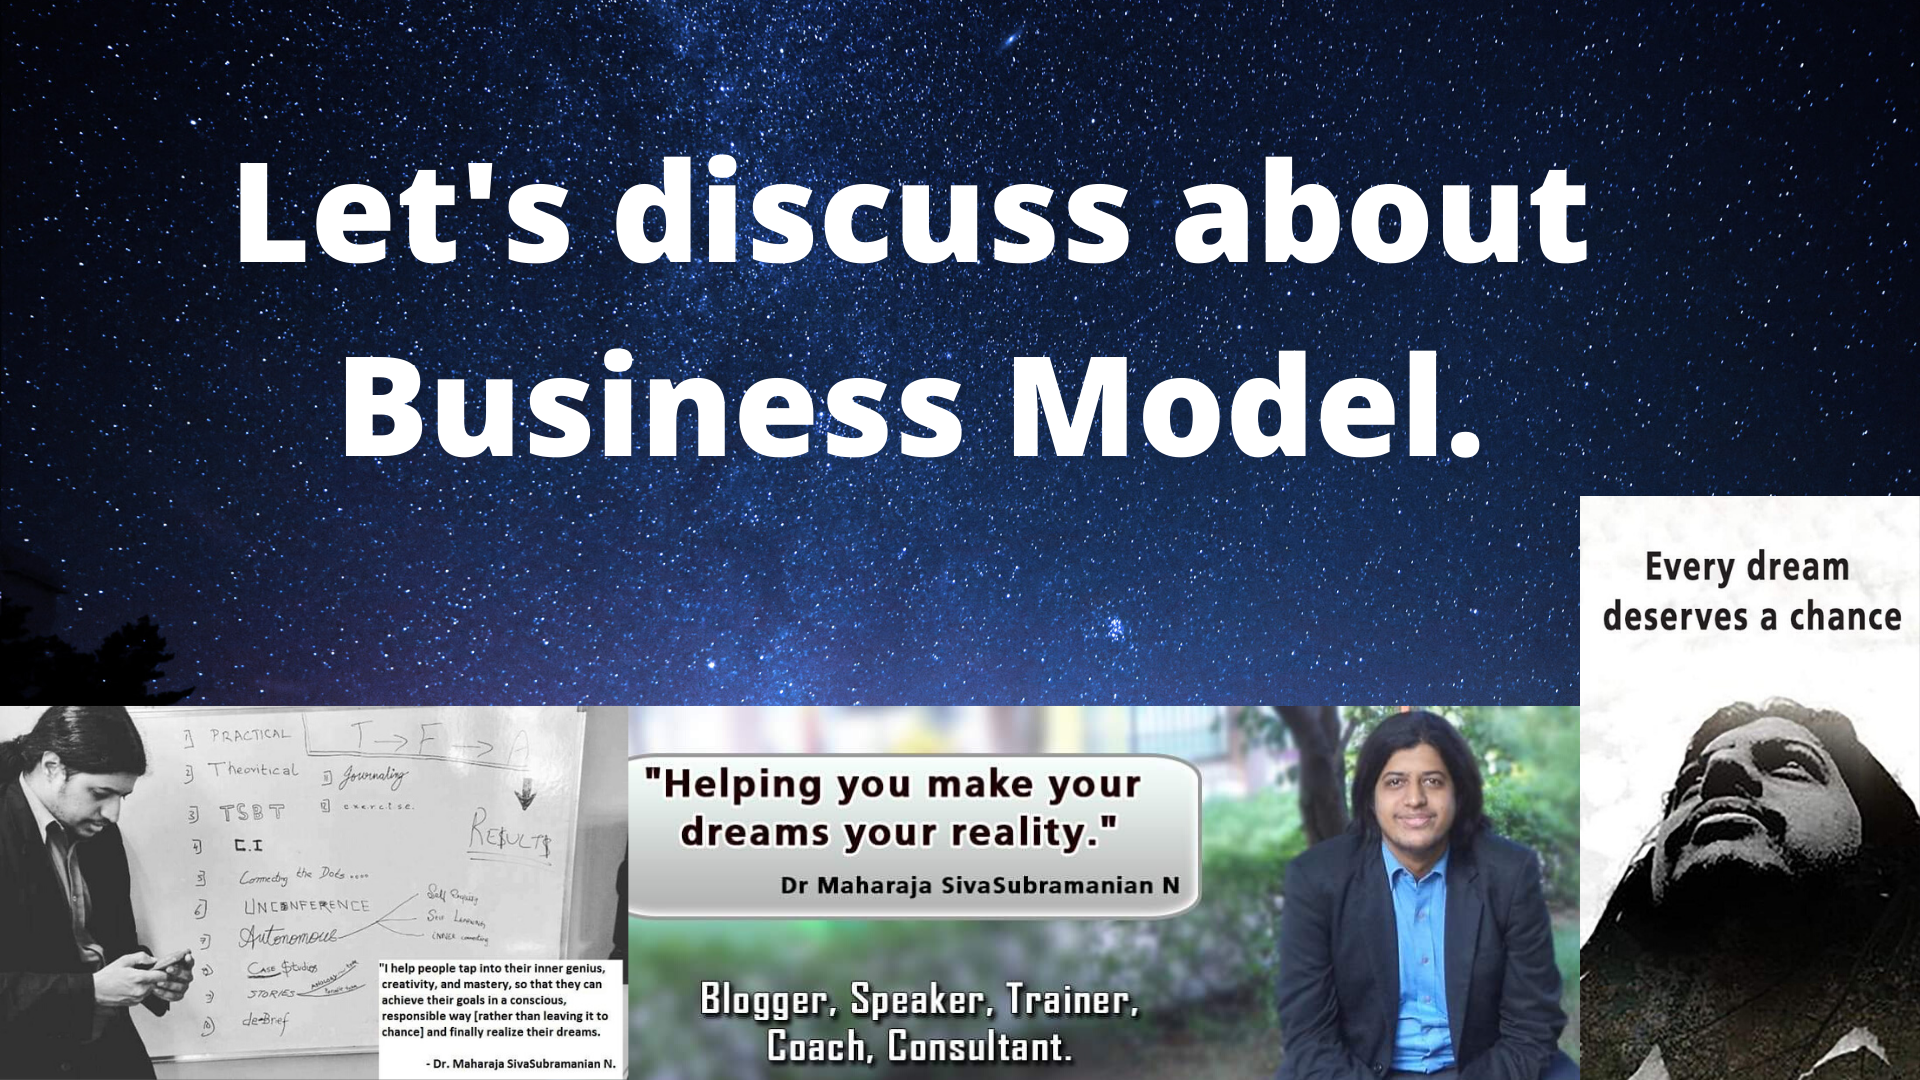 Let's discuss about Business Model.